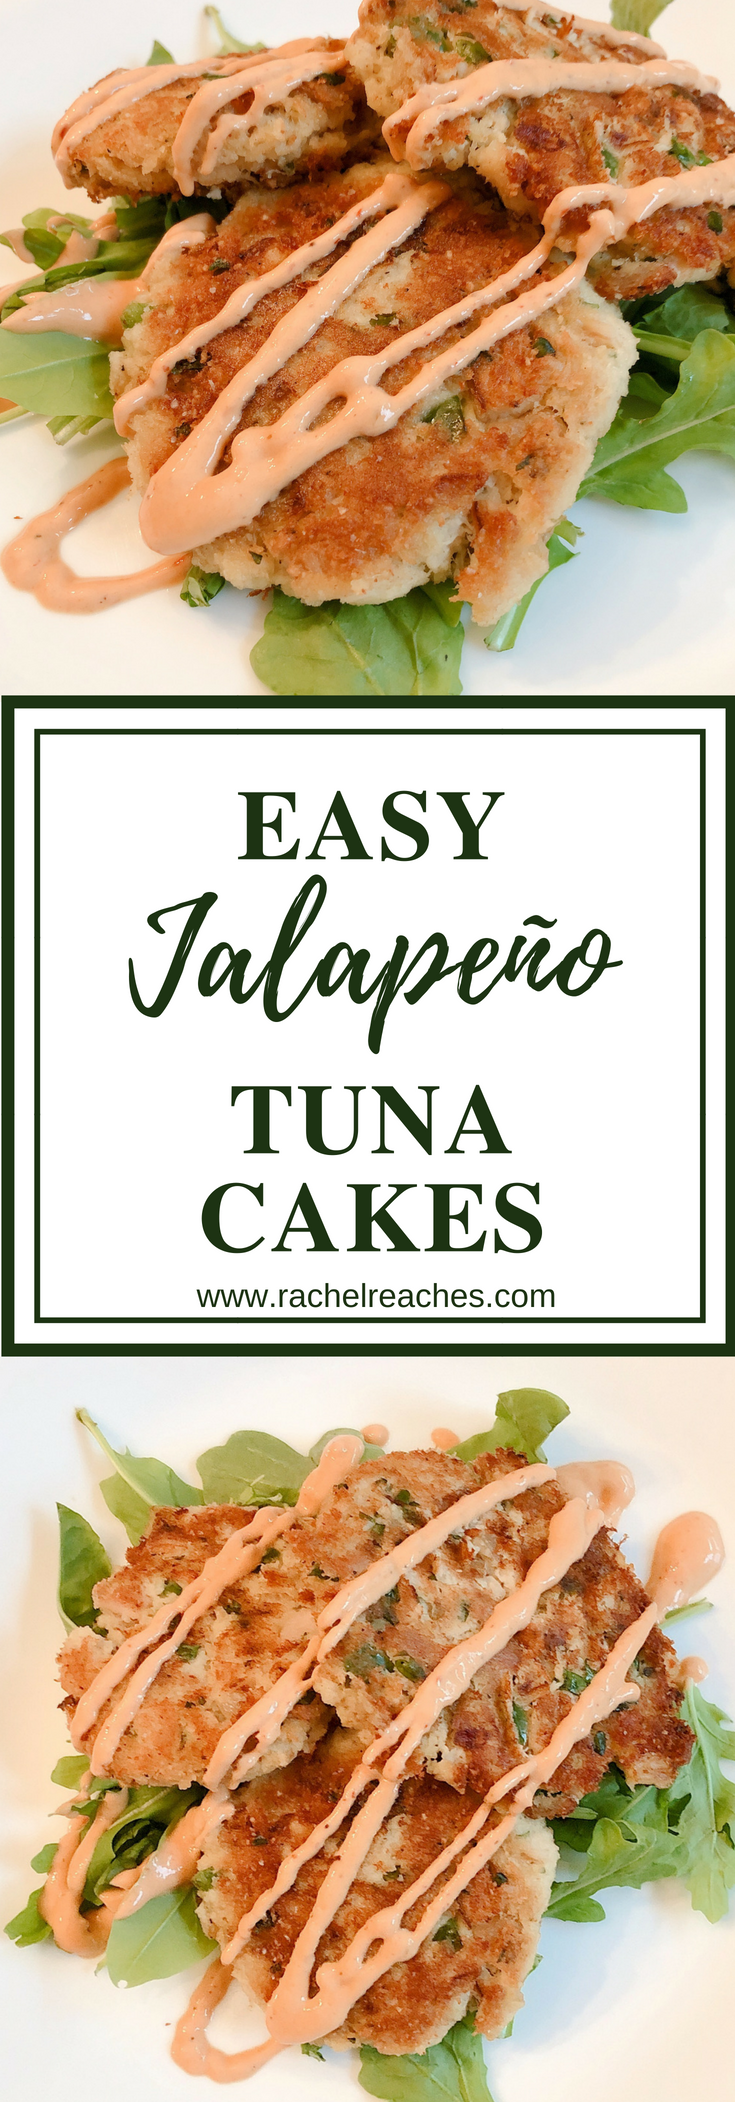 Jalapeno Tuna Cakes Pin - Healthy Eating.png